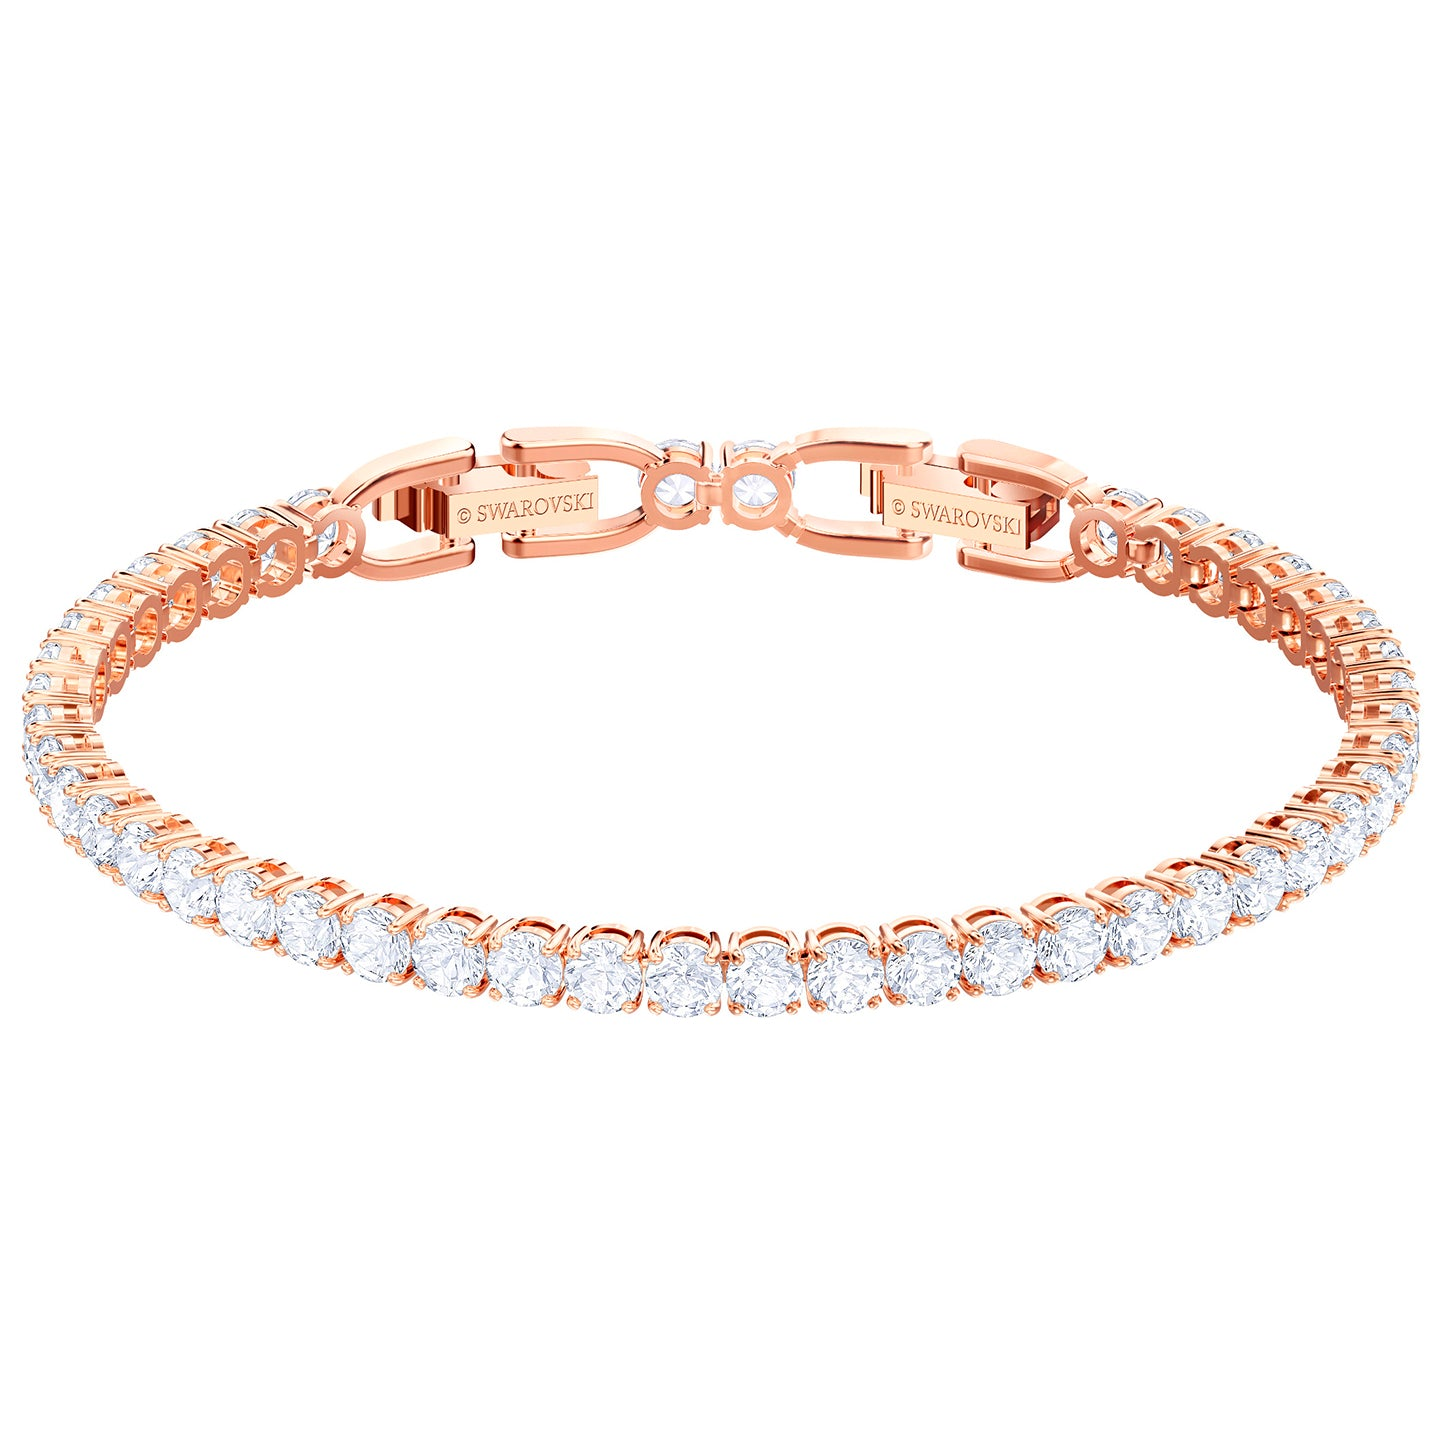 TENNIS BRACELET ROUND DELUXE, WHITE, ROSE-GOLD TONE PLATED